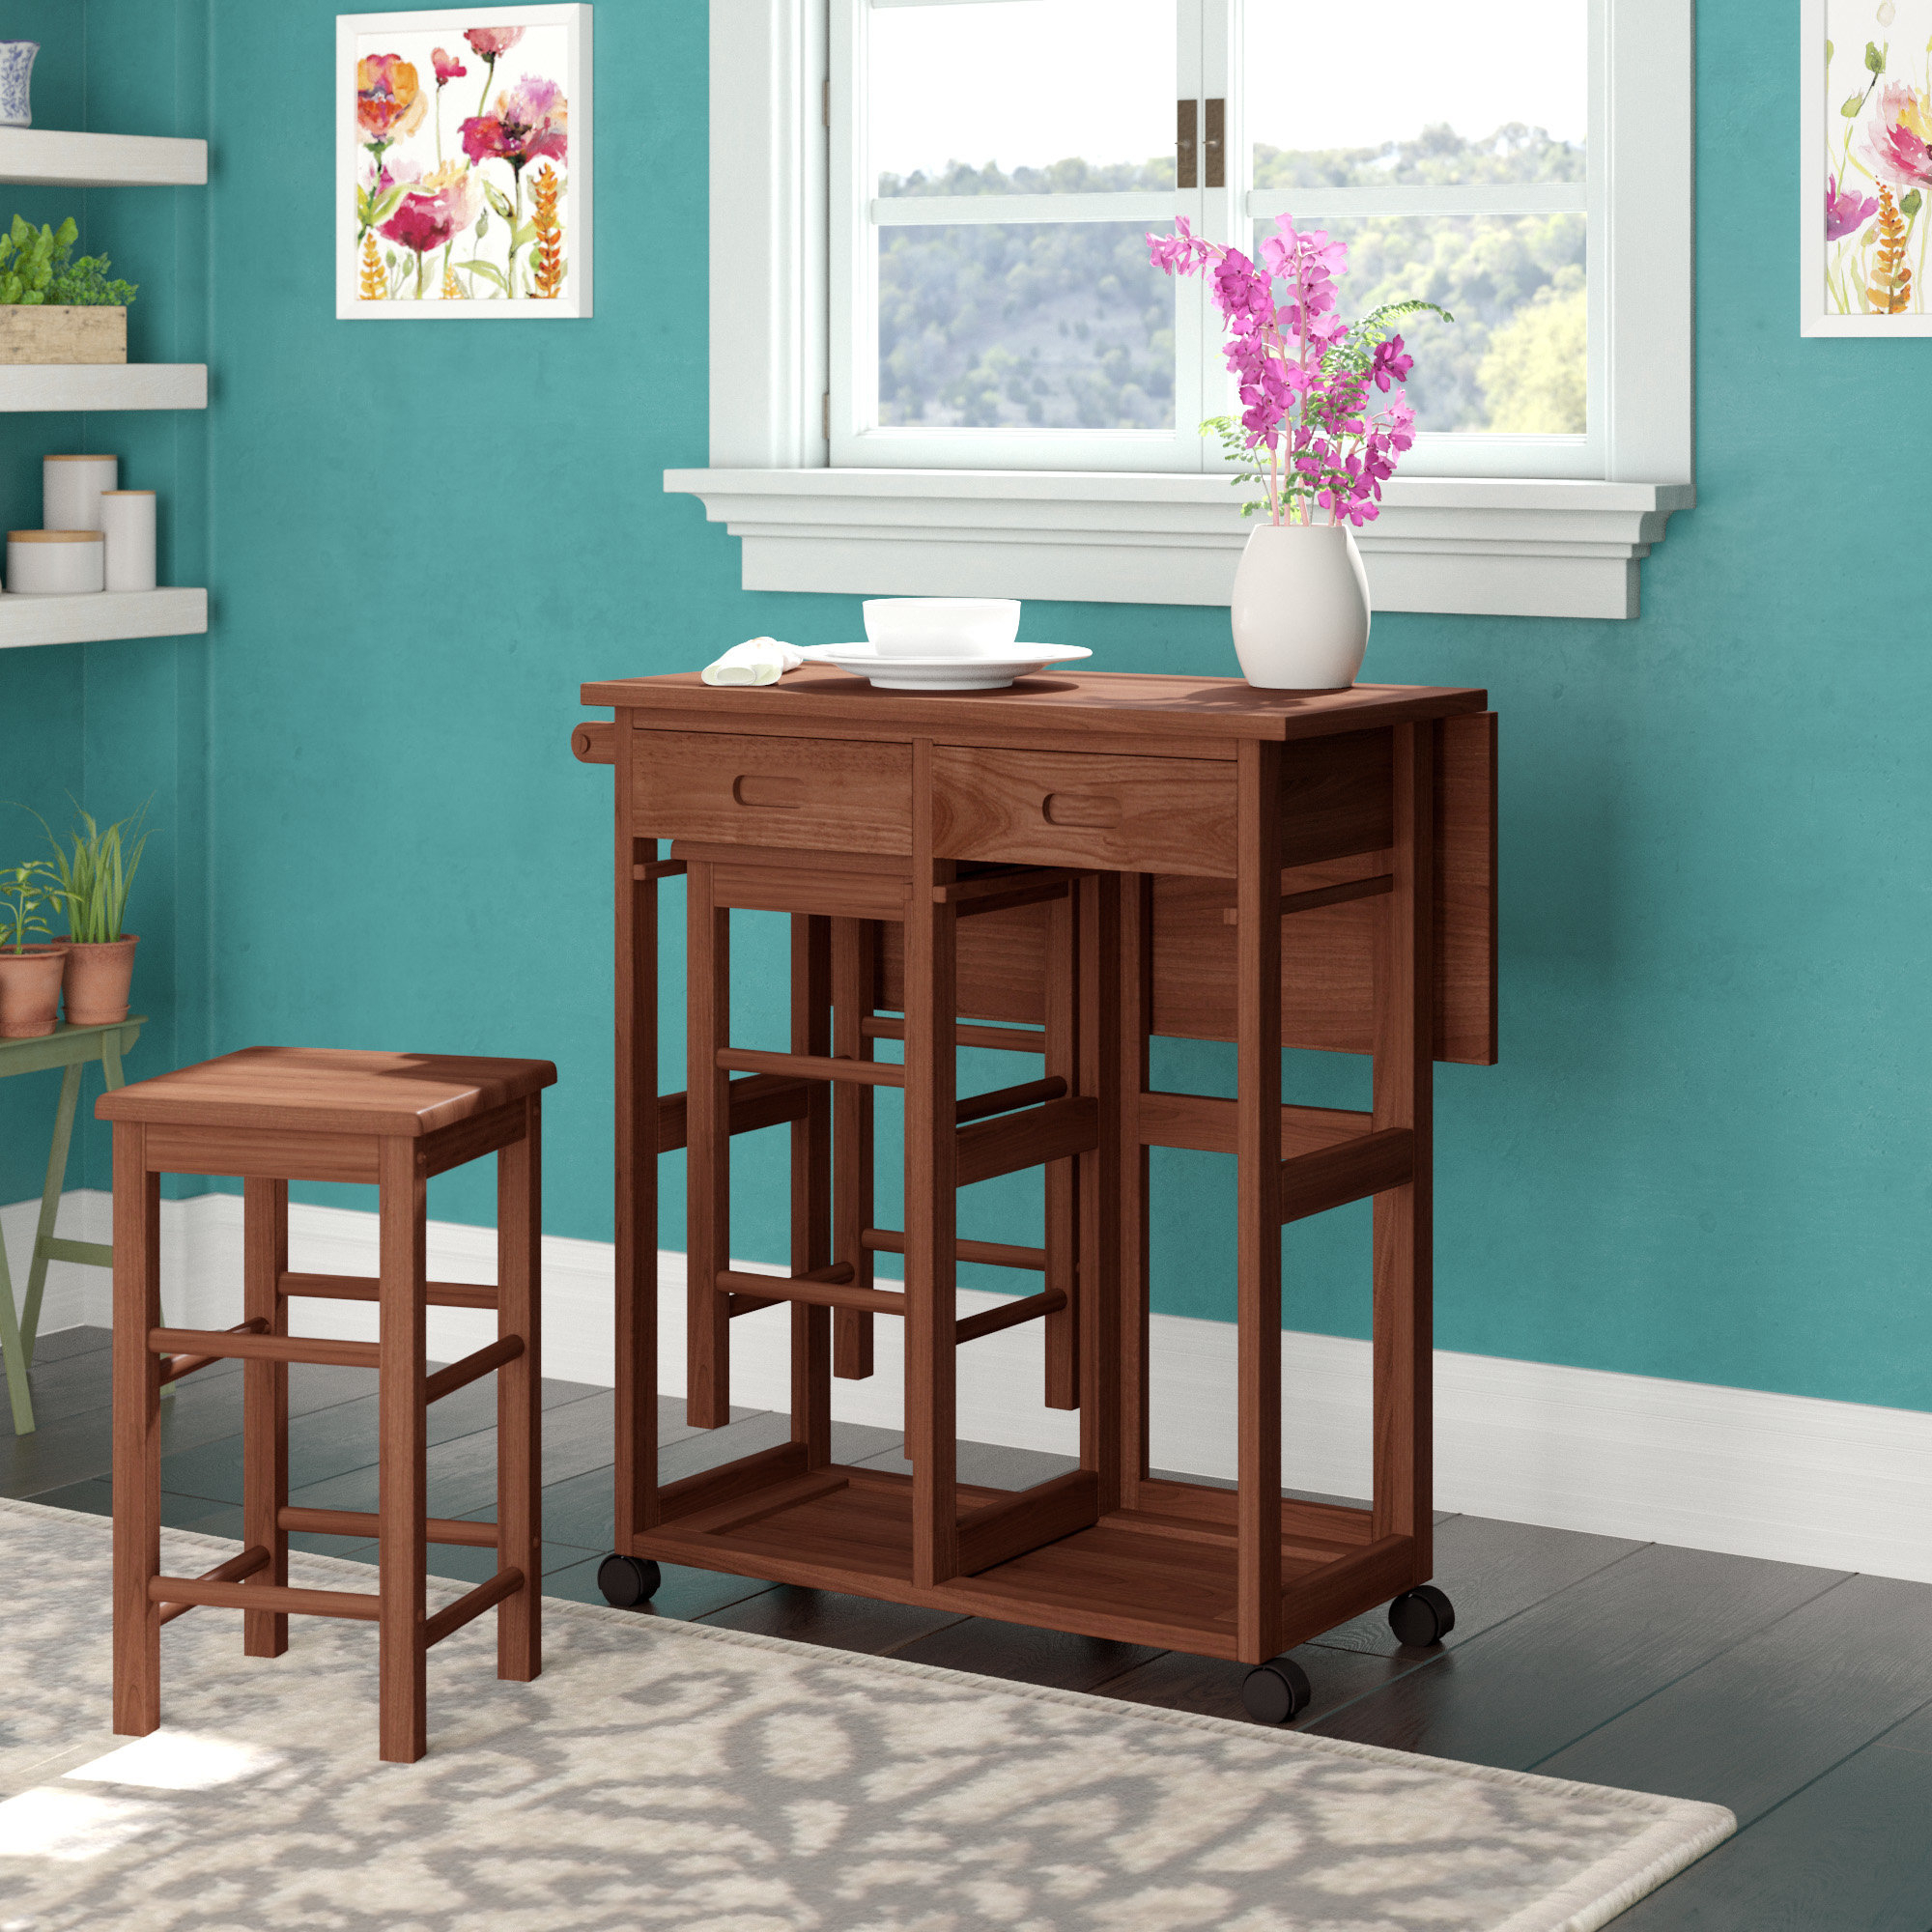 Newest Callaghan 3 Piece Drop Leaf Dining Set With Regard To Poynter 3 Piece Drop Leaf Dining Sets (View 10 of 20)